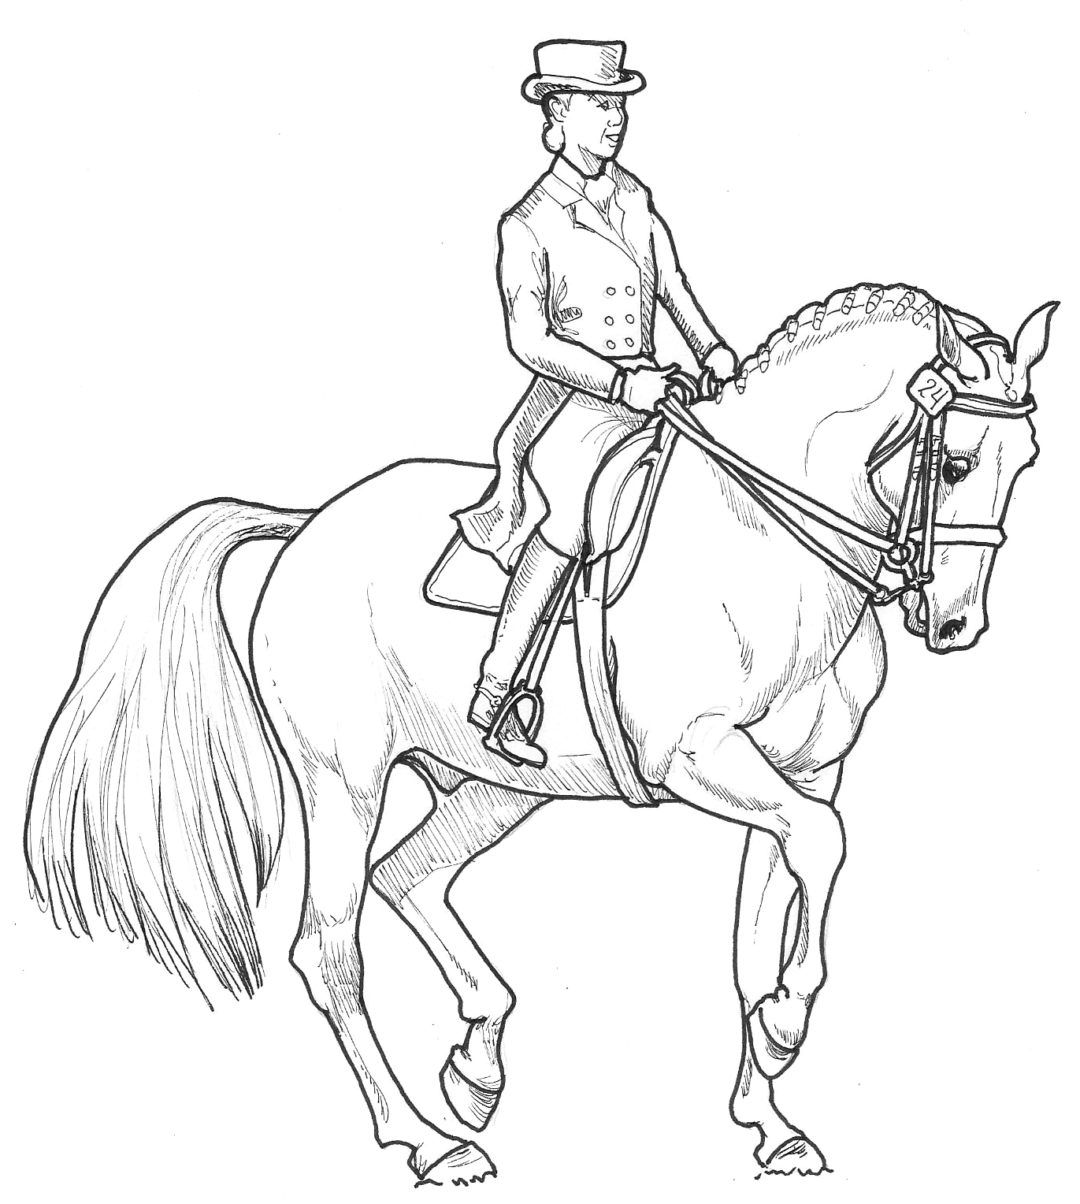 Coloring Rocks Horse Coloring Pages Horse Coloring Animal Coloring Pages [ 1204 x 1080 Pixel ]